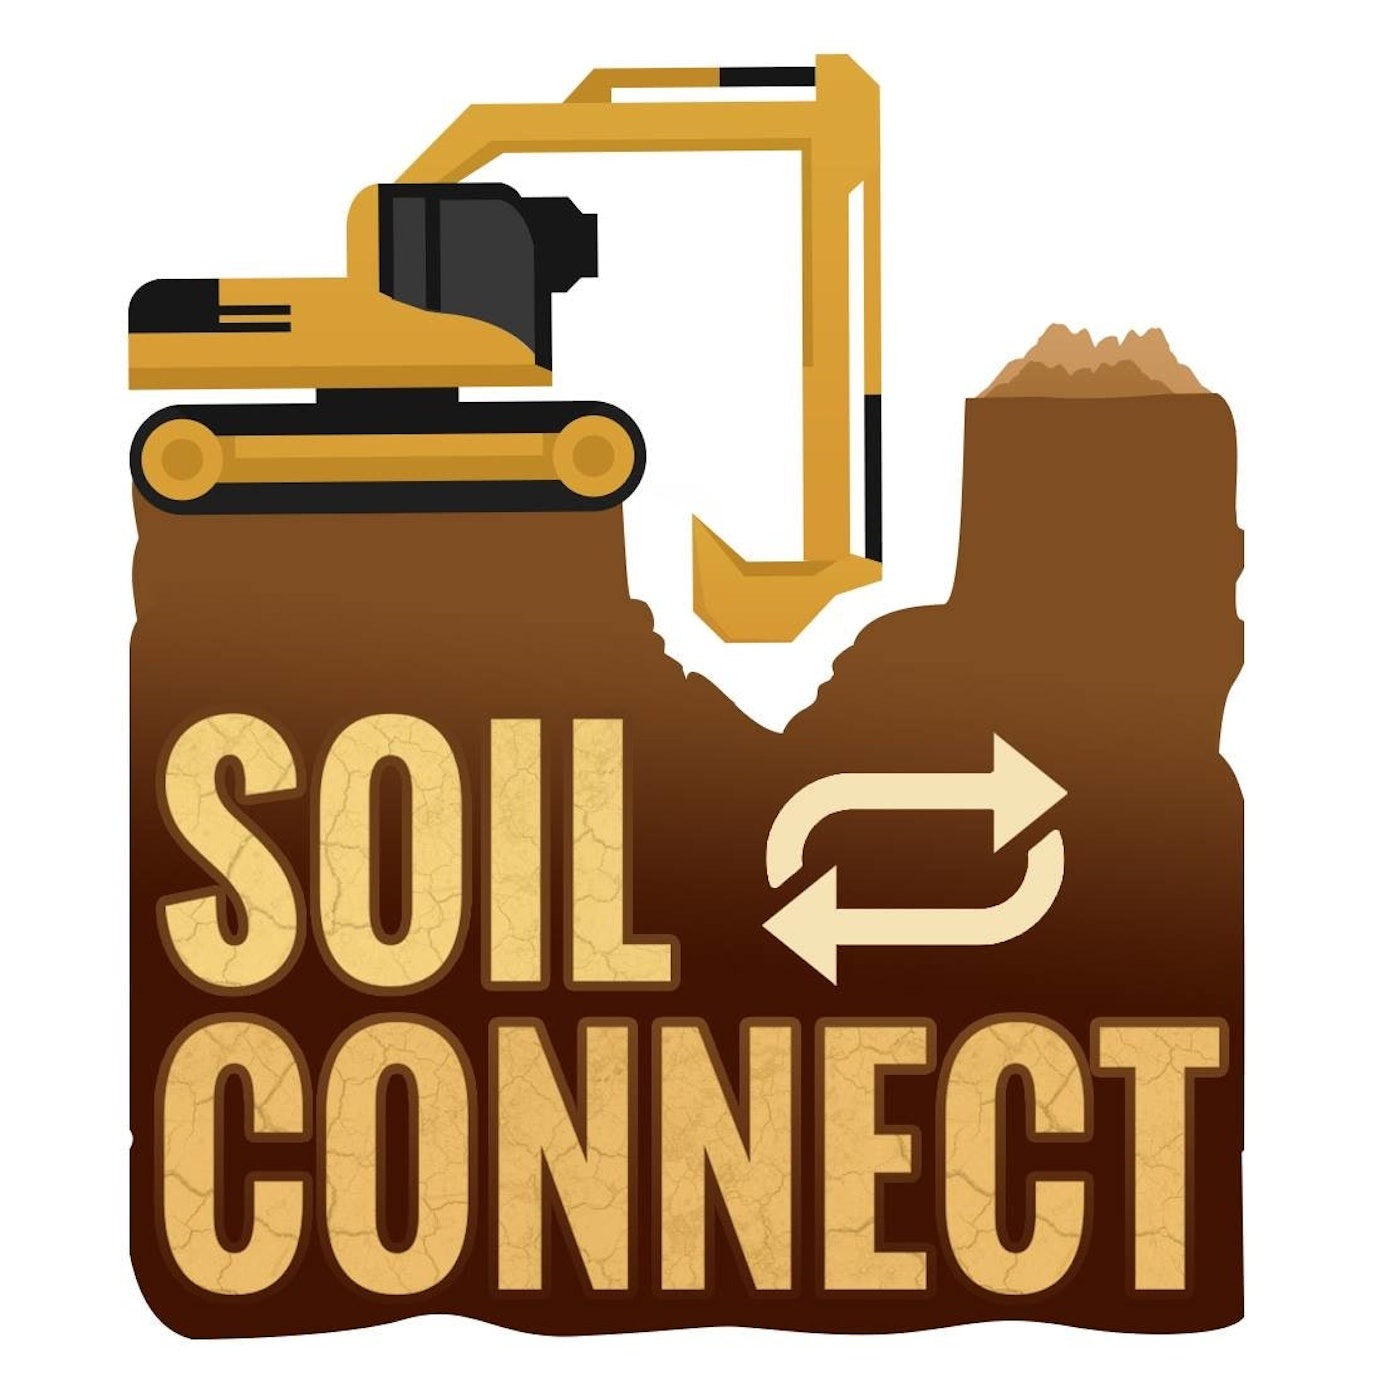 Cliff Fetner - Founder and CEO, Soil Connect